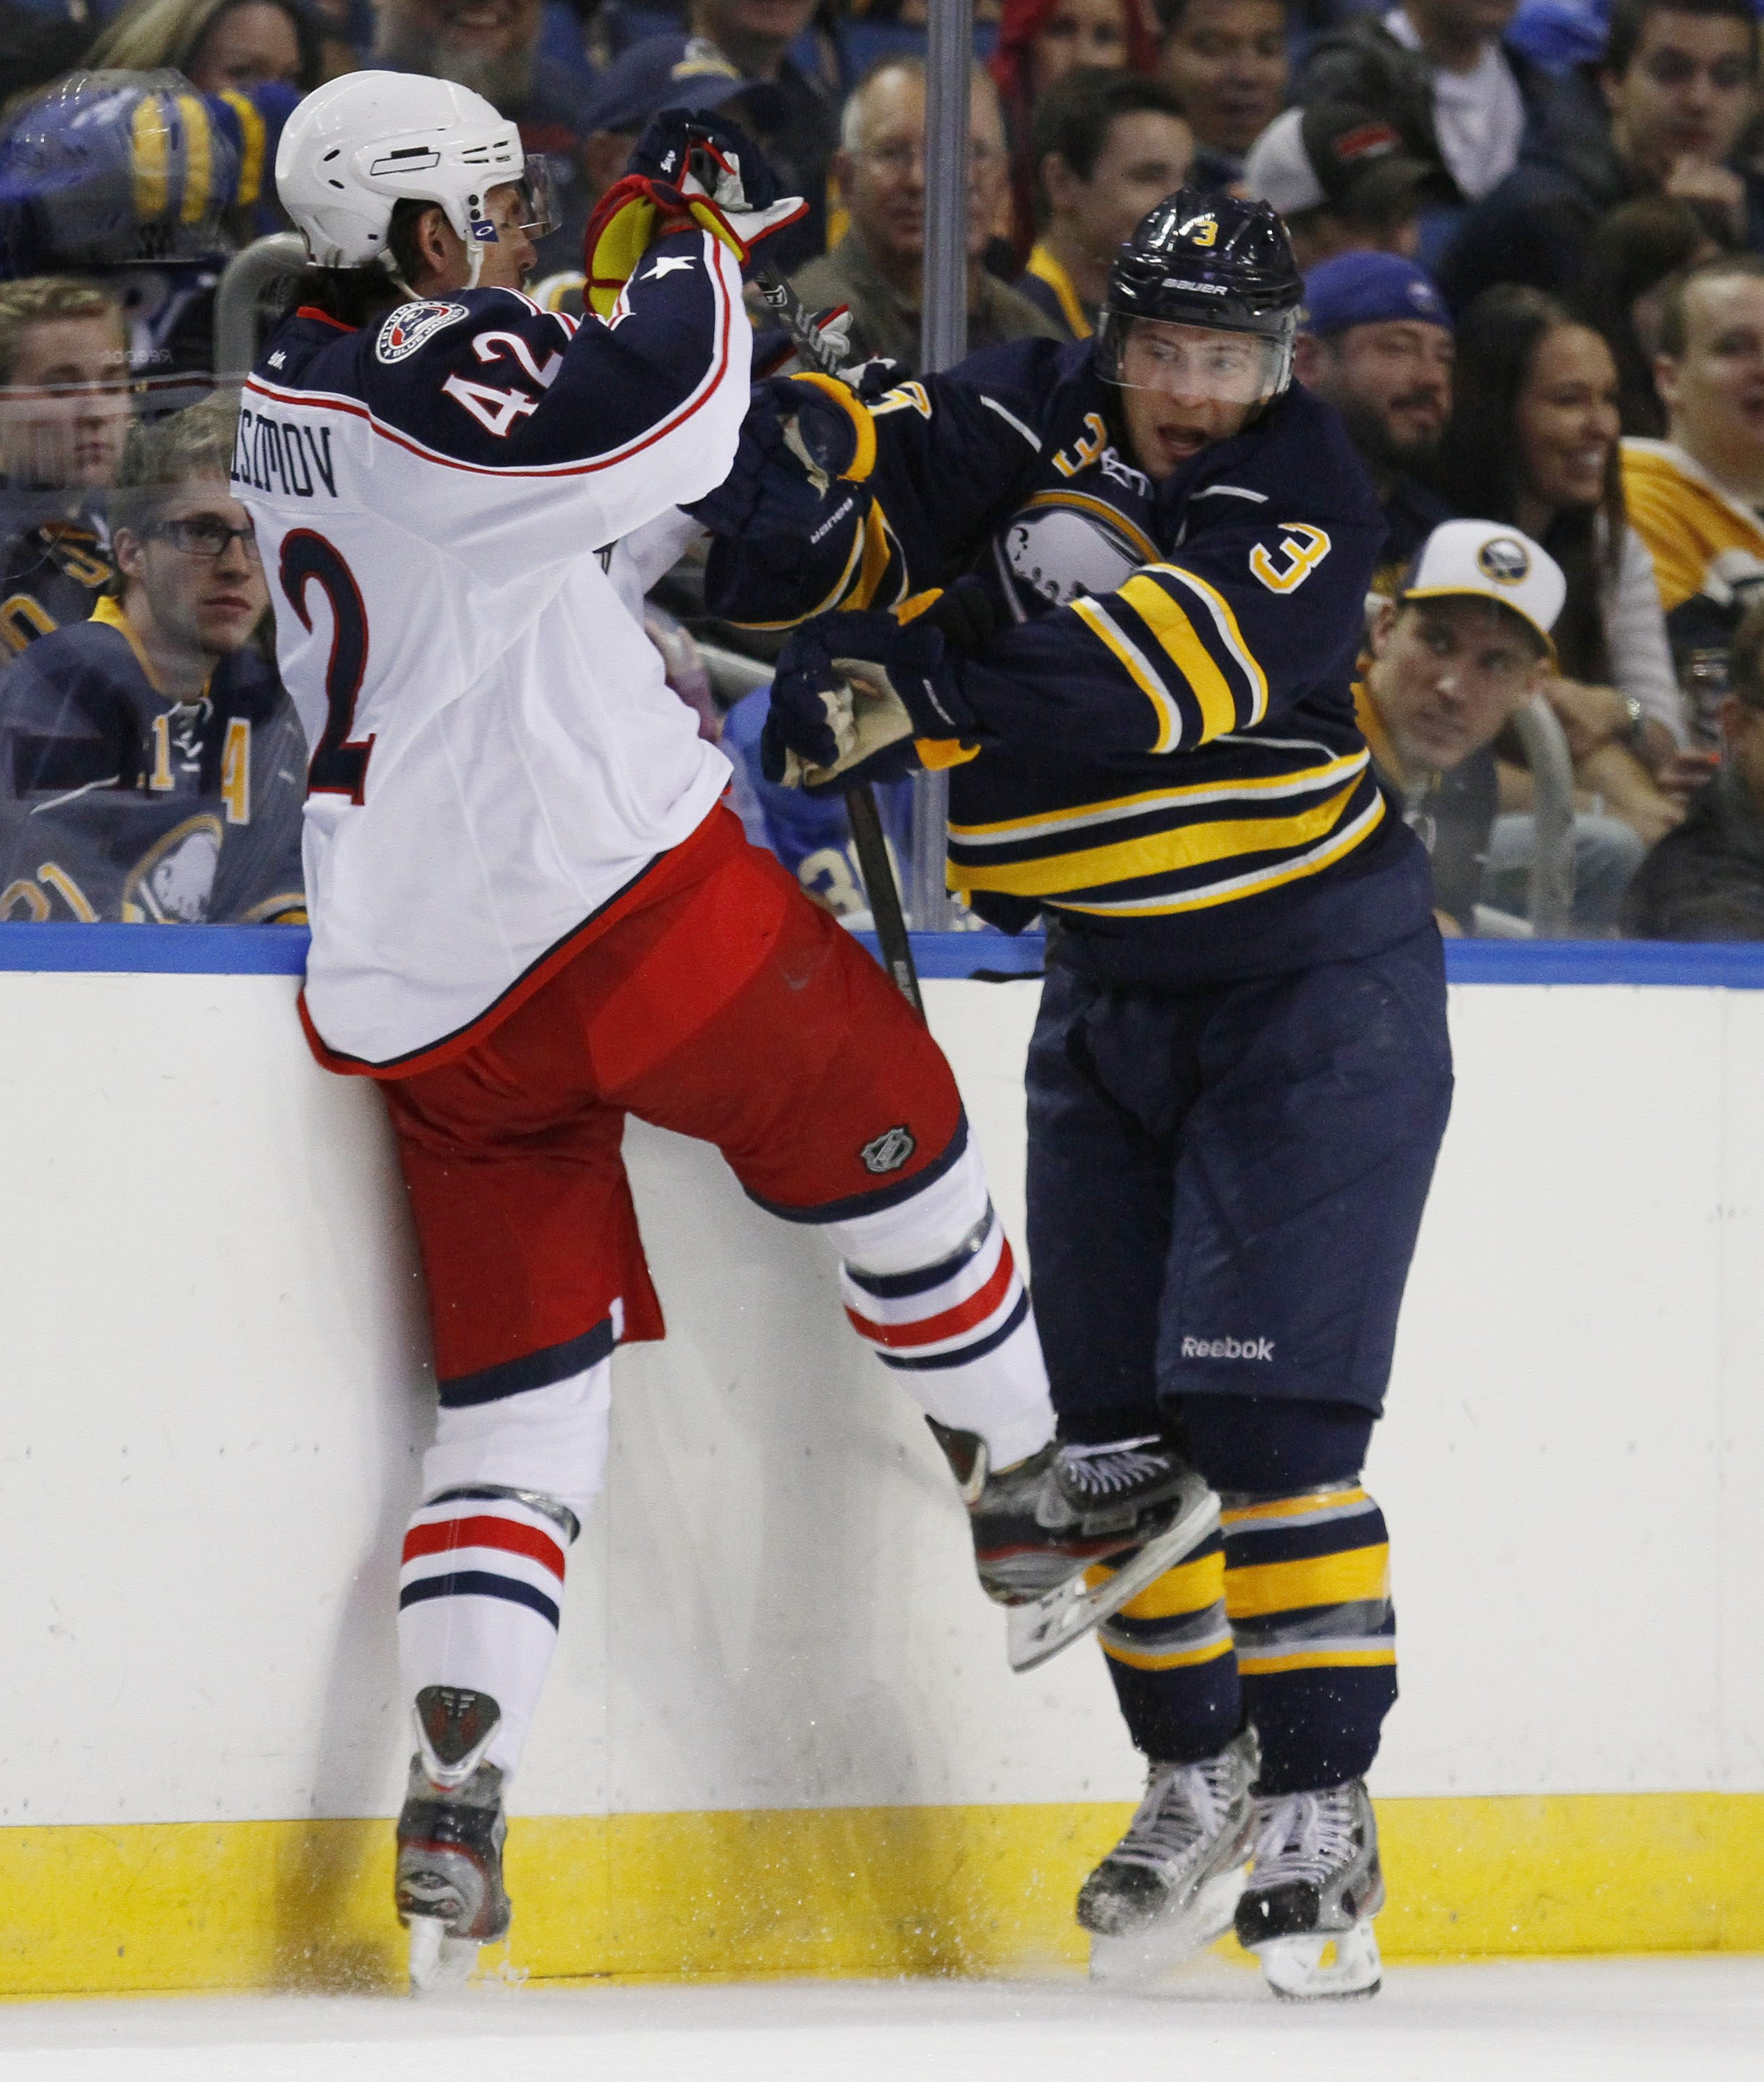 The Sabres' Mark Pysyk, checking the Blue Jackets' Artem Anisimov in the preseason, is the furthest along of the team's young defensemen.